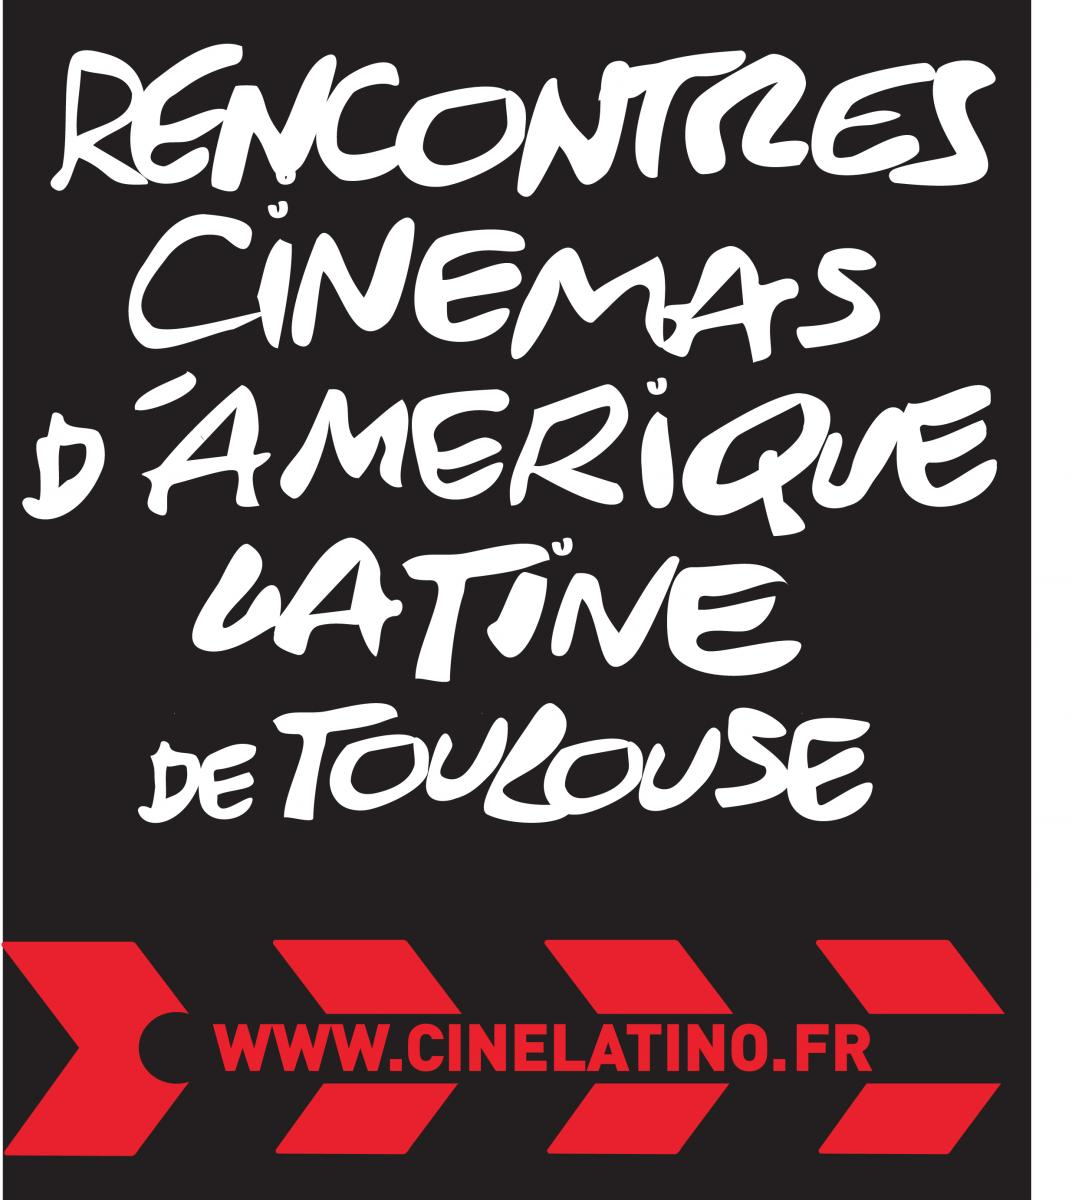 rencontres cinemas